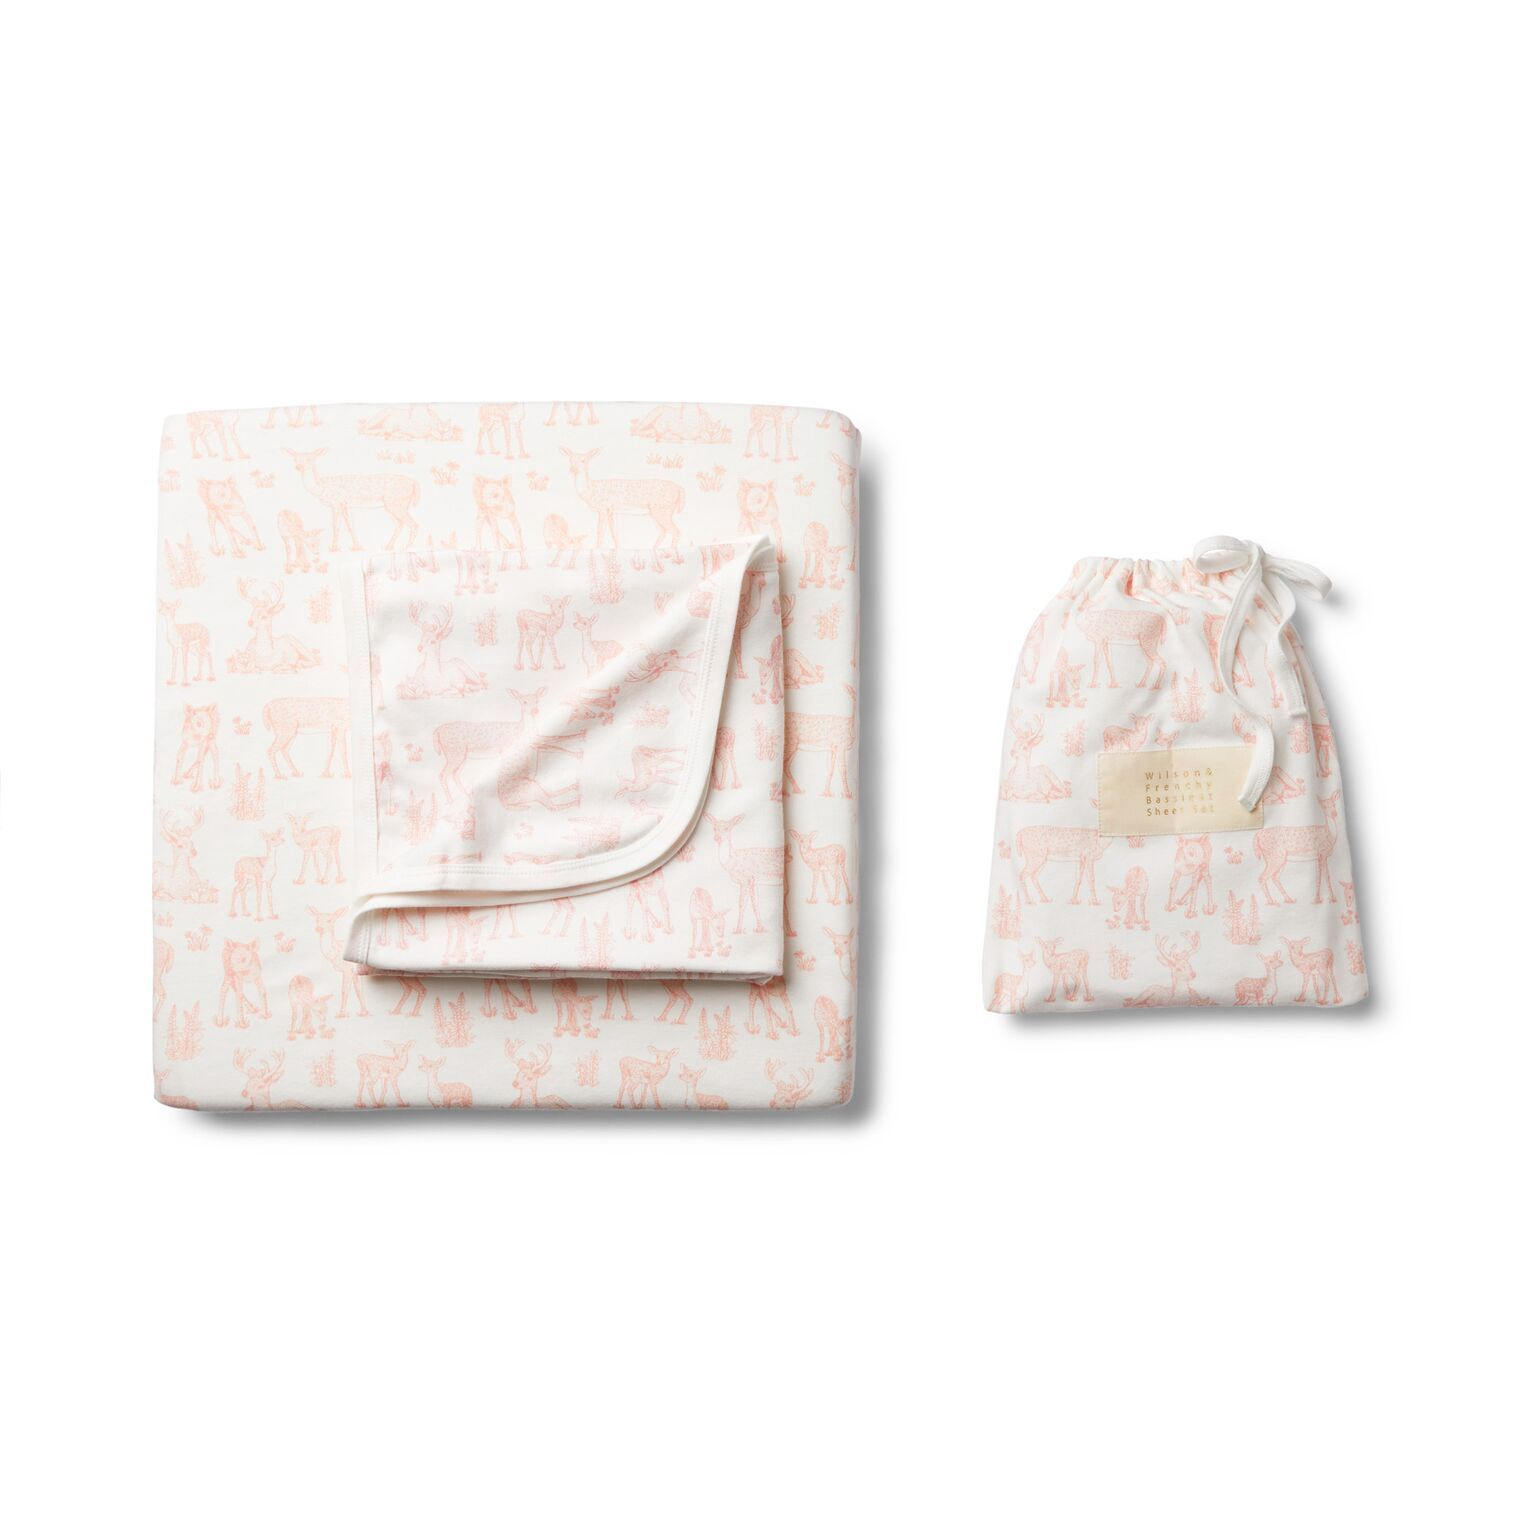 WF Oh dear bassinet sheet set